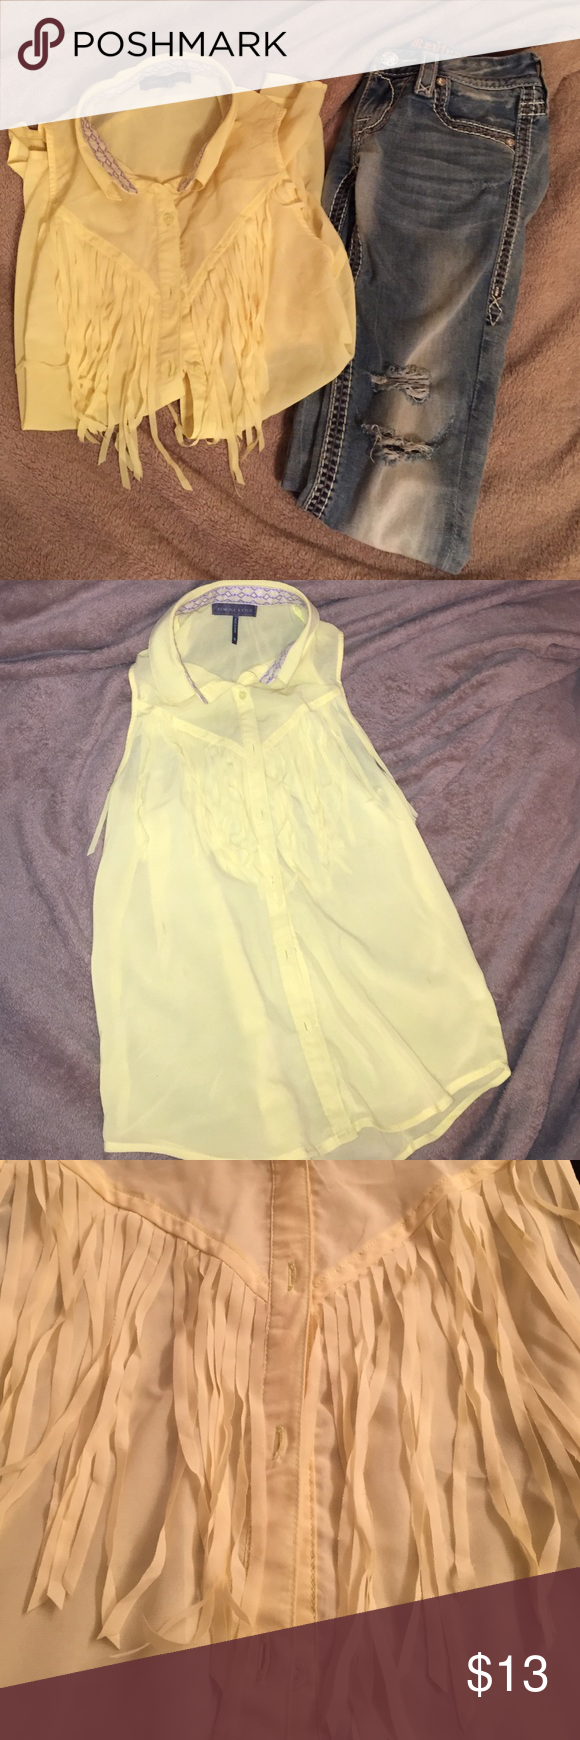 Kendal and Kylie fringe tank top Light yellow sheer fringe tank top. Hardly worn and no snags or wear. Pants not included! Perfect for spring time. Kendall & Kylie Tops Tank Tops